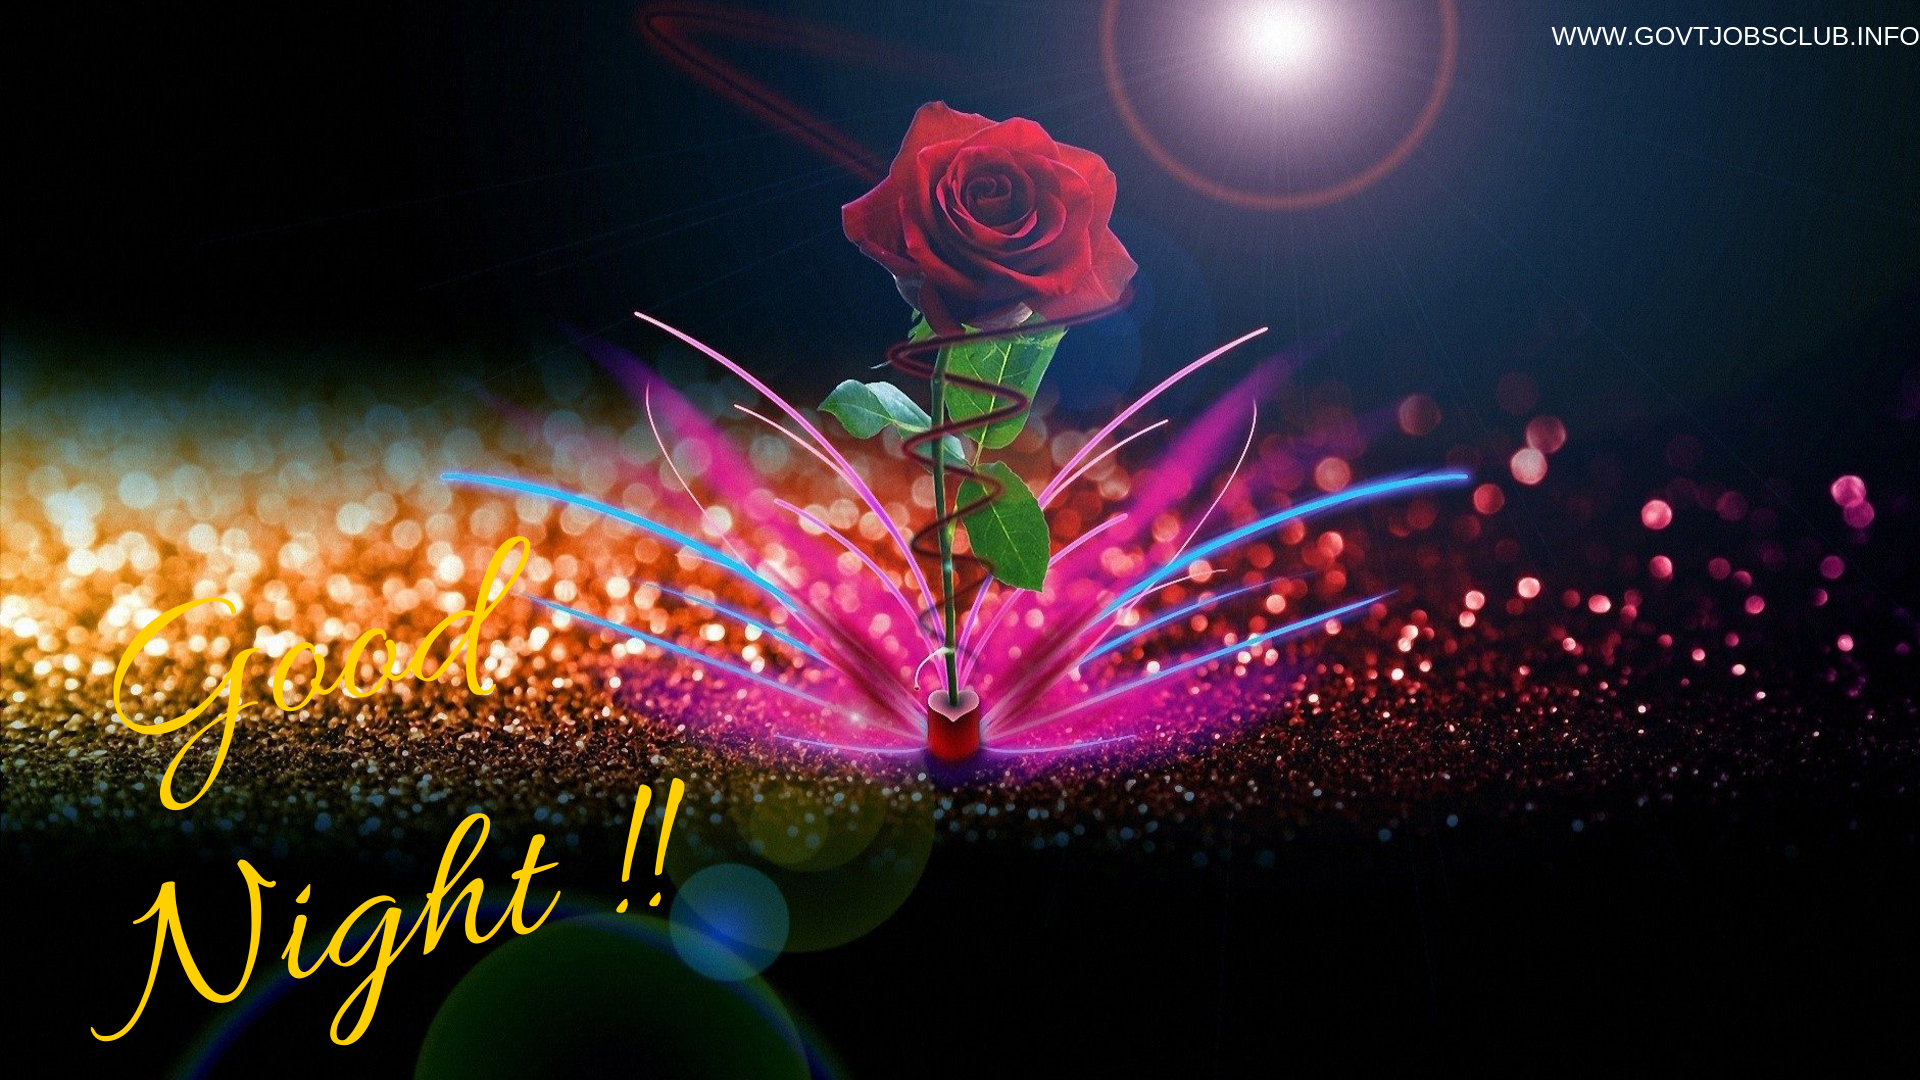 Best Good Night Images With Rose Hd Wallpaper And Pics Latest 2019 Download By Jyoti Agarwal Medium